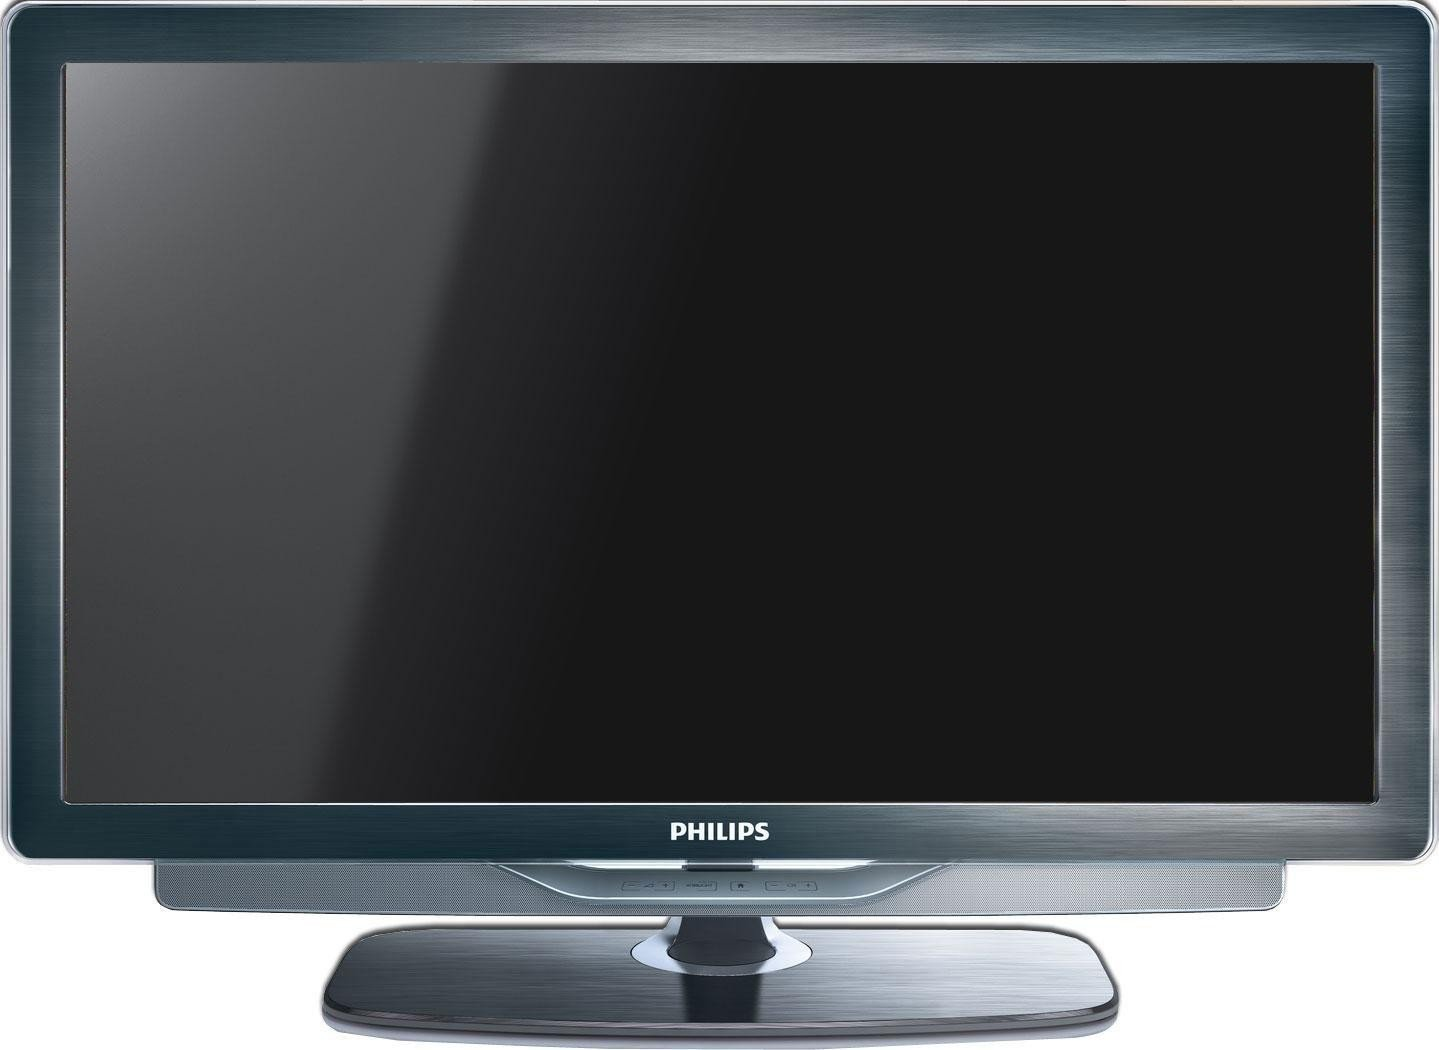 DRIVERS FOR PHILIPS 46PFL9705H12 SMART LED TV